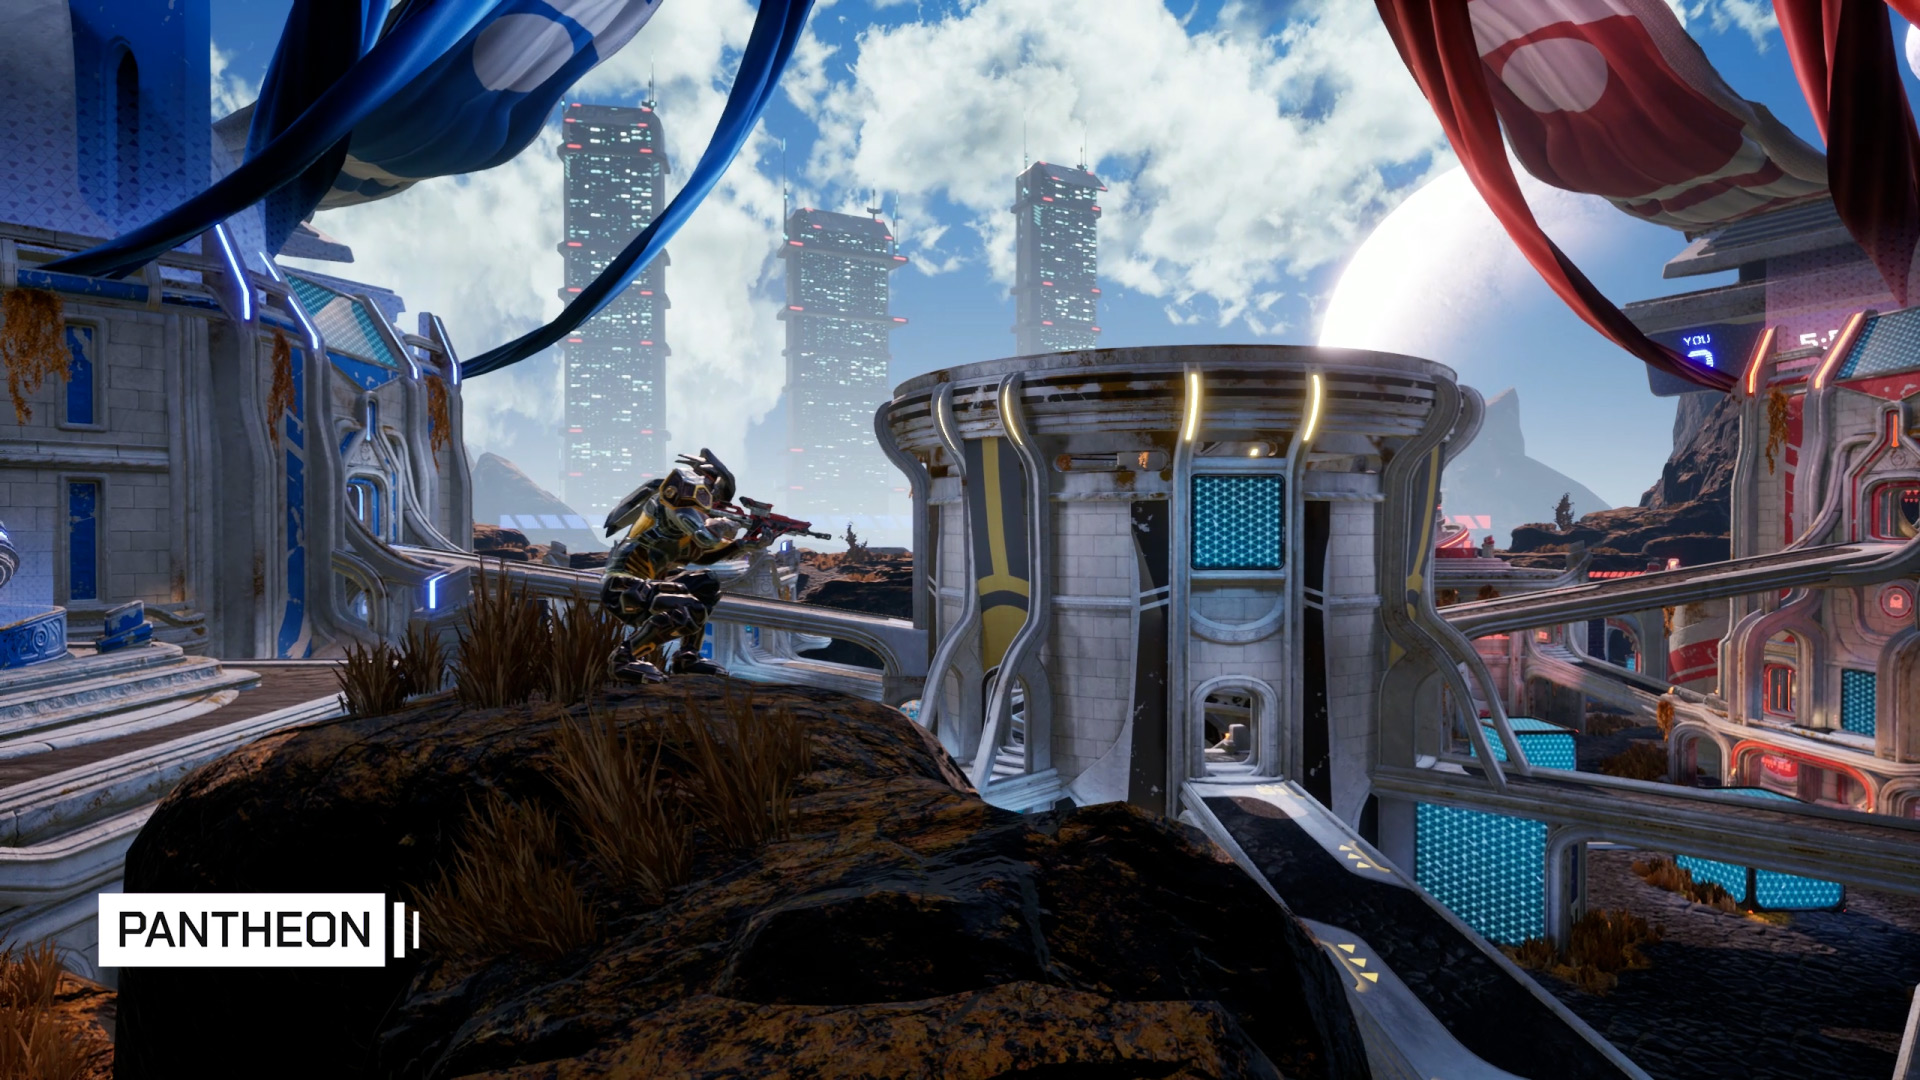 Using the sniper rifle in the game Splitgate Arena Warfare